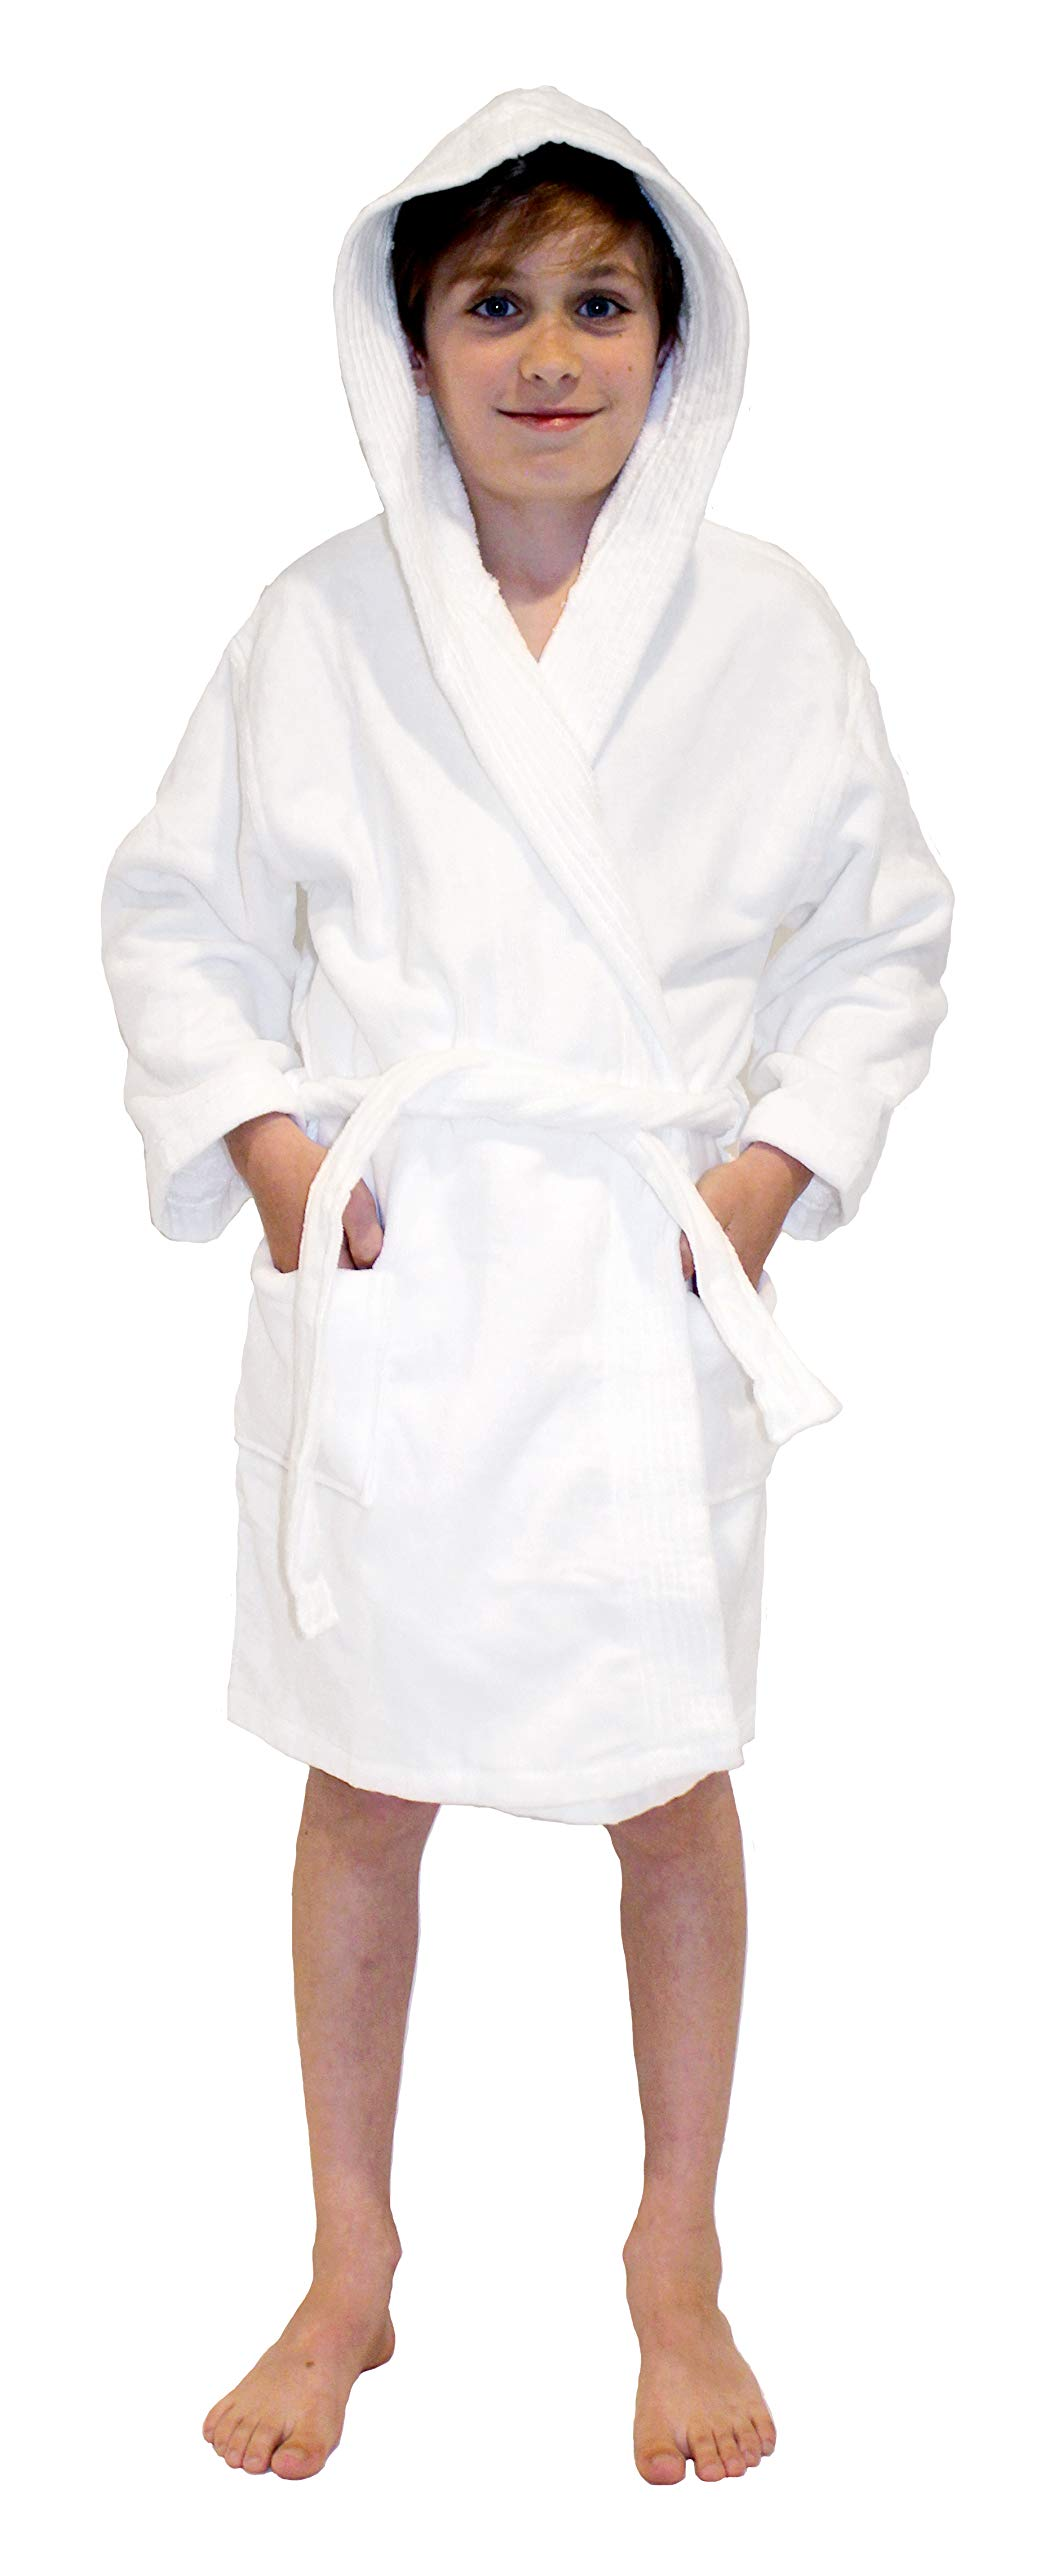 Hooded Boys, Girls Bathrobe - Kids Terry Velour Robes Used in 4,5 Star Hotels White by Monarch/Cypress